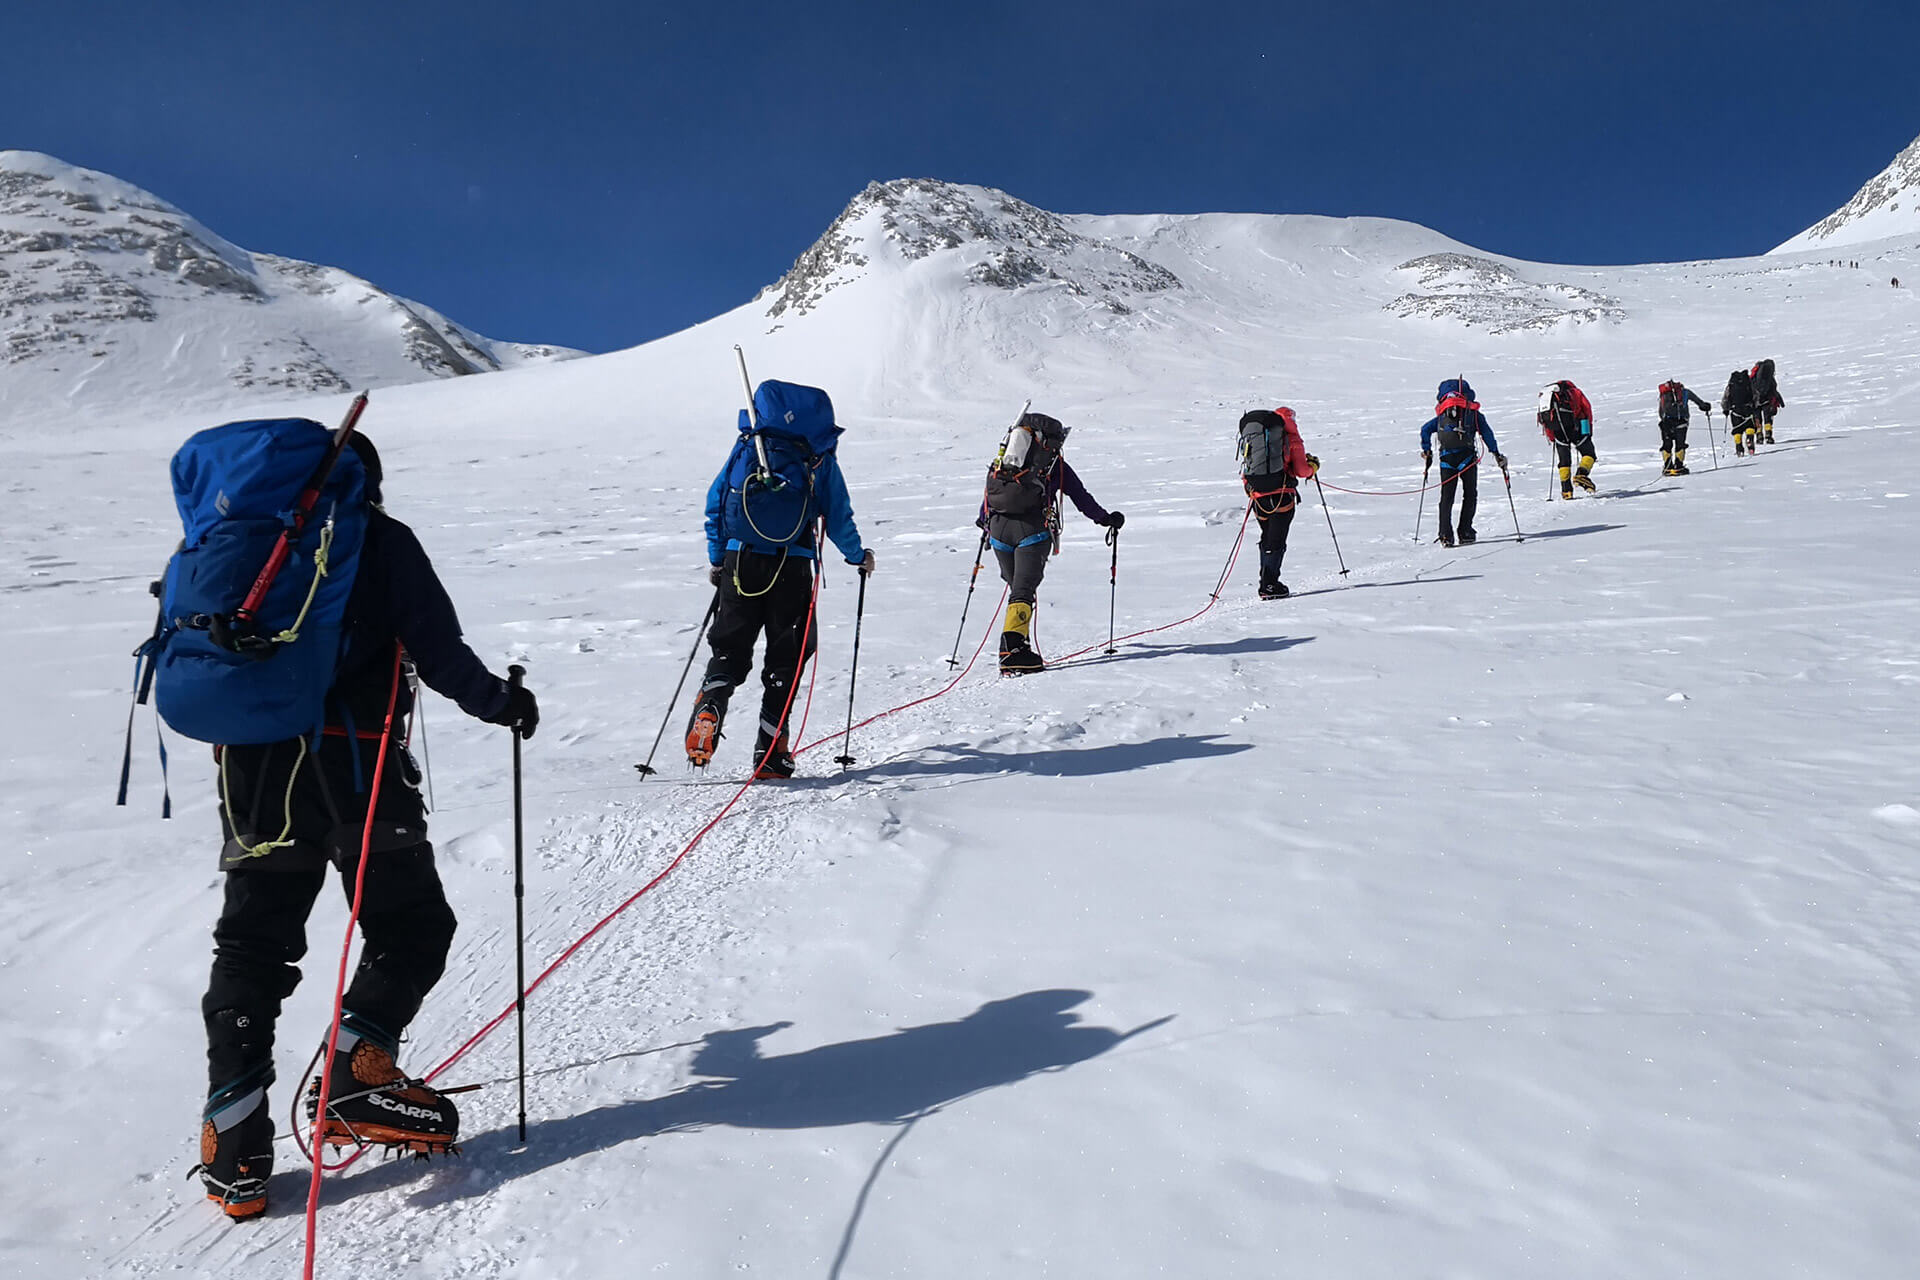 Carina Dayondon and a band of Summiteers hiking the peaks of Mt. Vinson